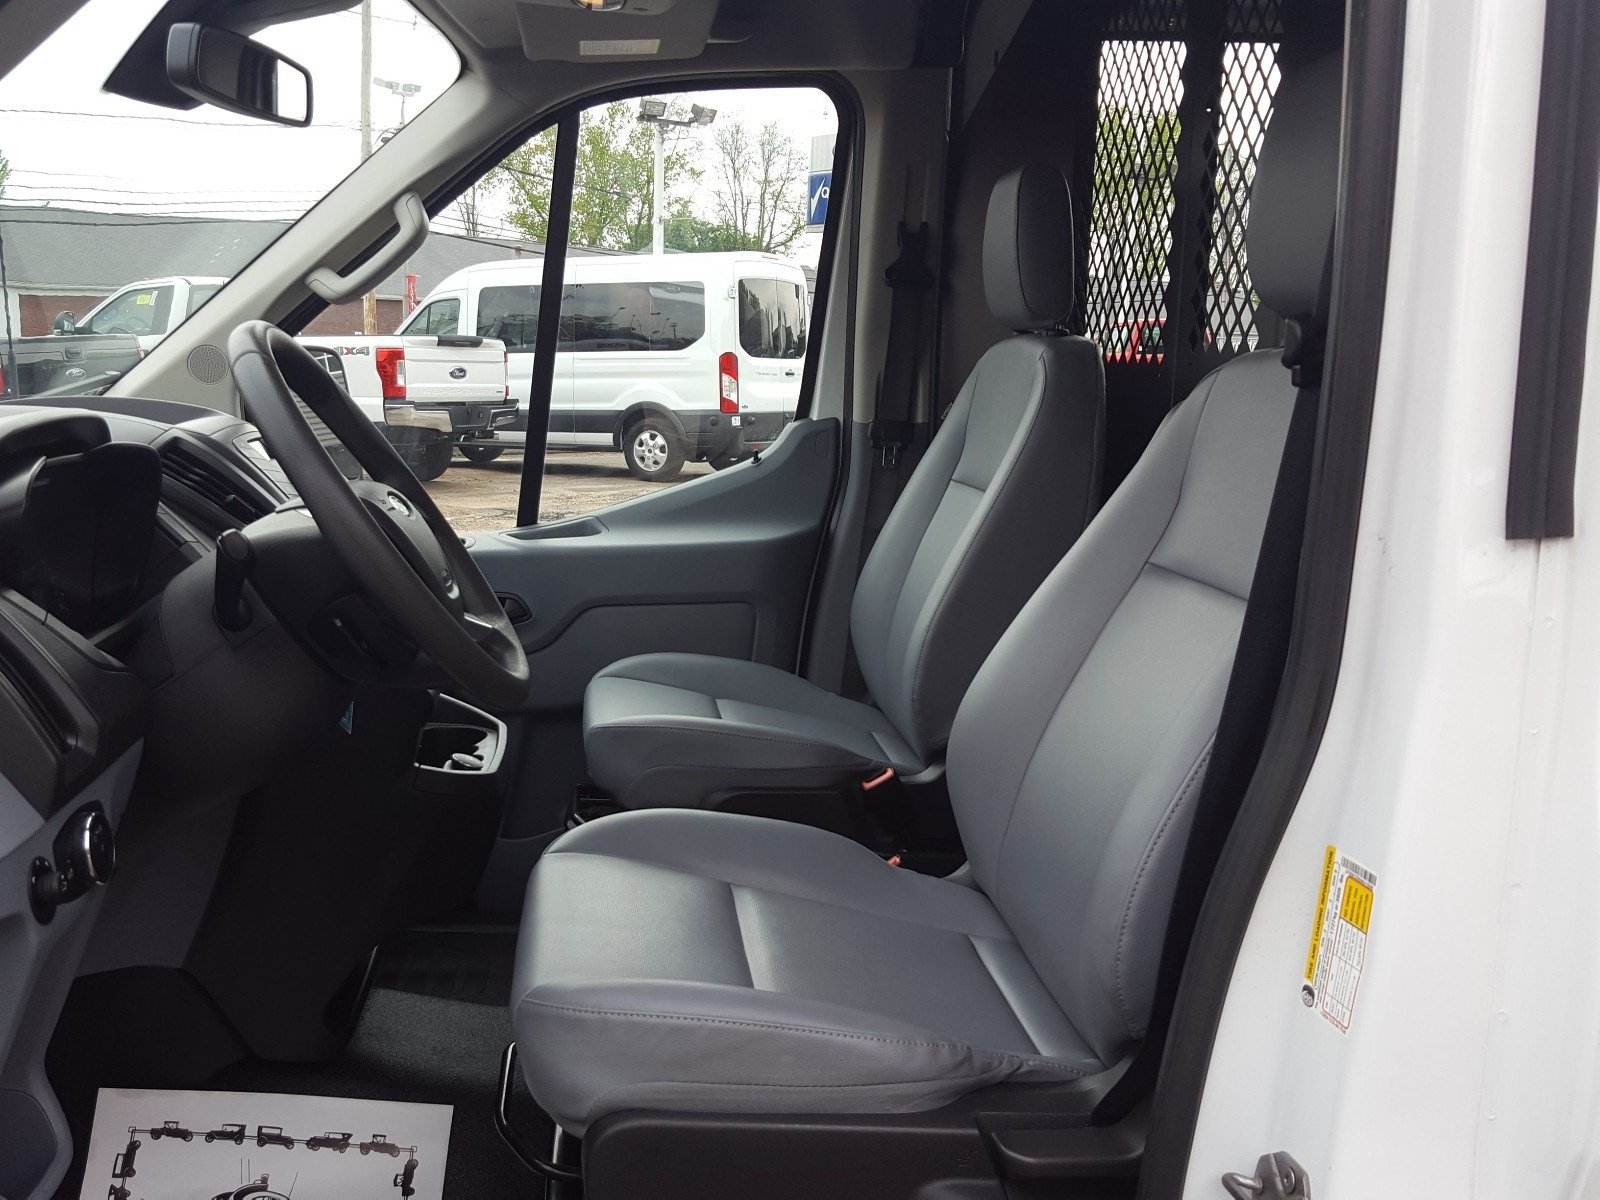 2017 Transit 350 High Roof, Upfitted Van #PBT1625 - photo 8